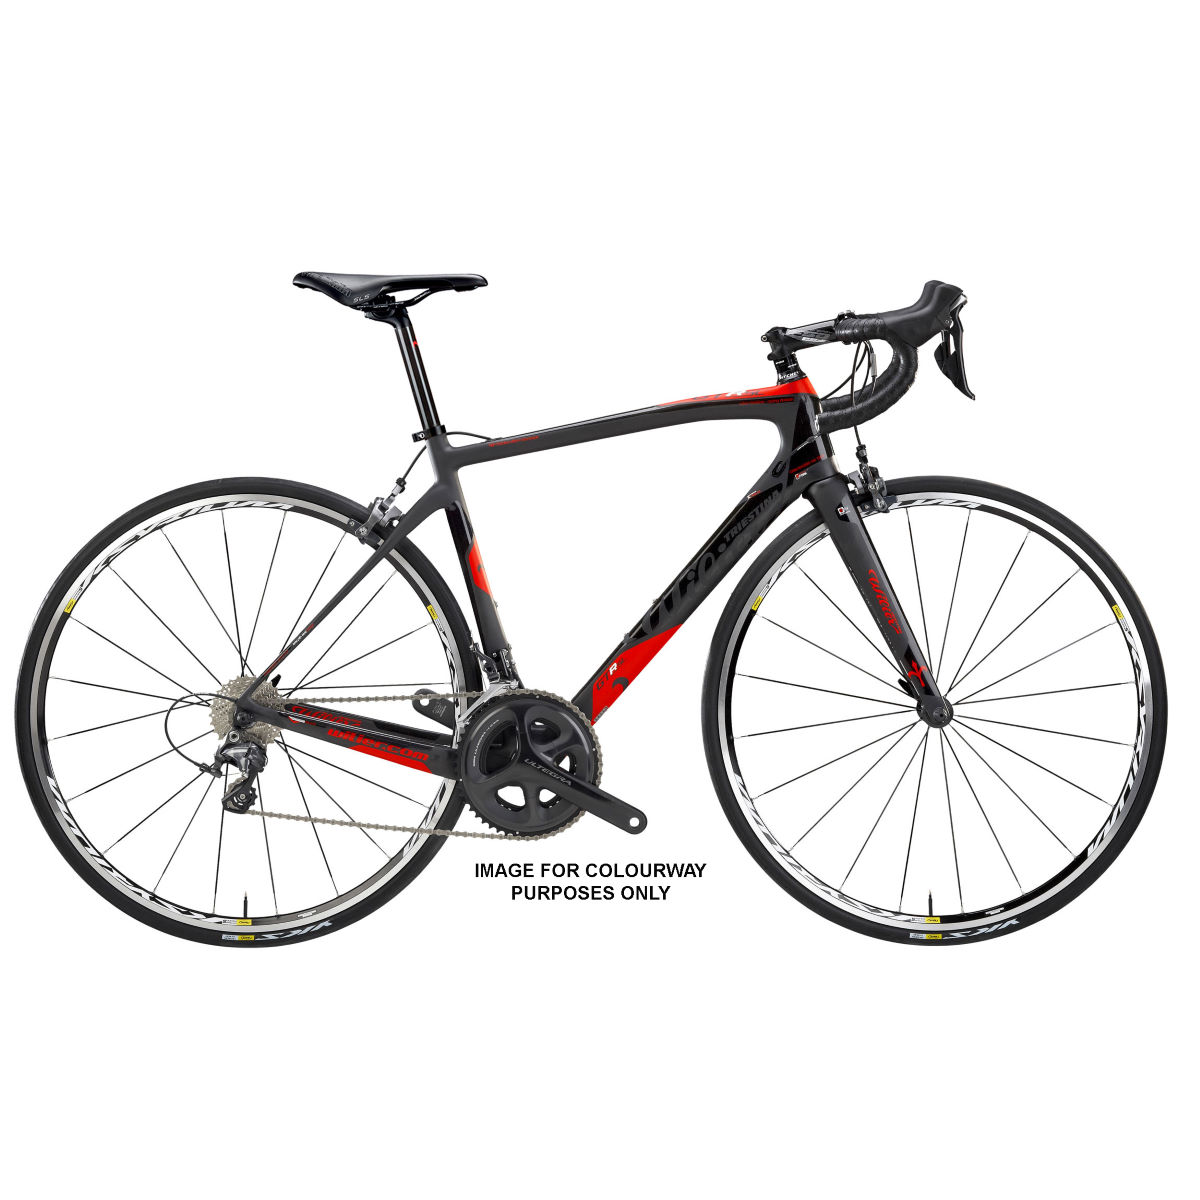 Vélo de route Wilier GTR SL Endurance (Chorus, 2017) - Medium Stock Bike Noir/Rouge Vélos de route